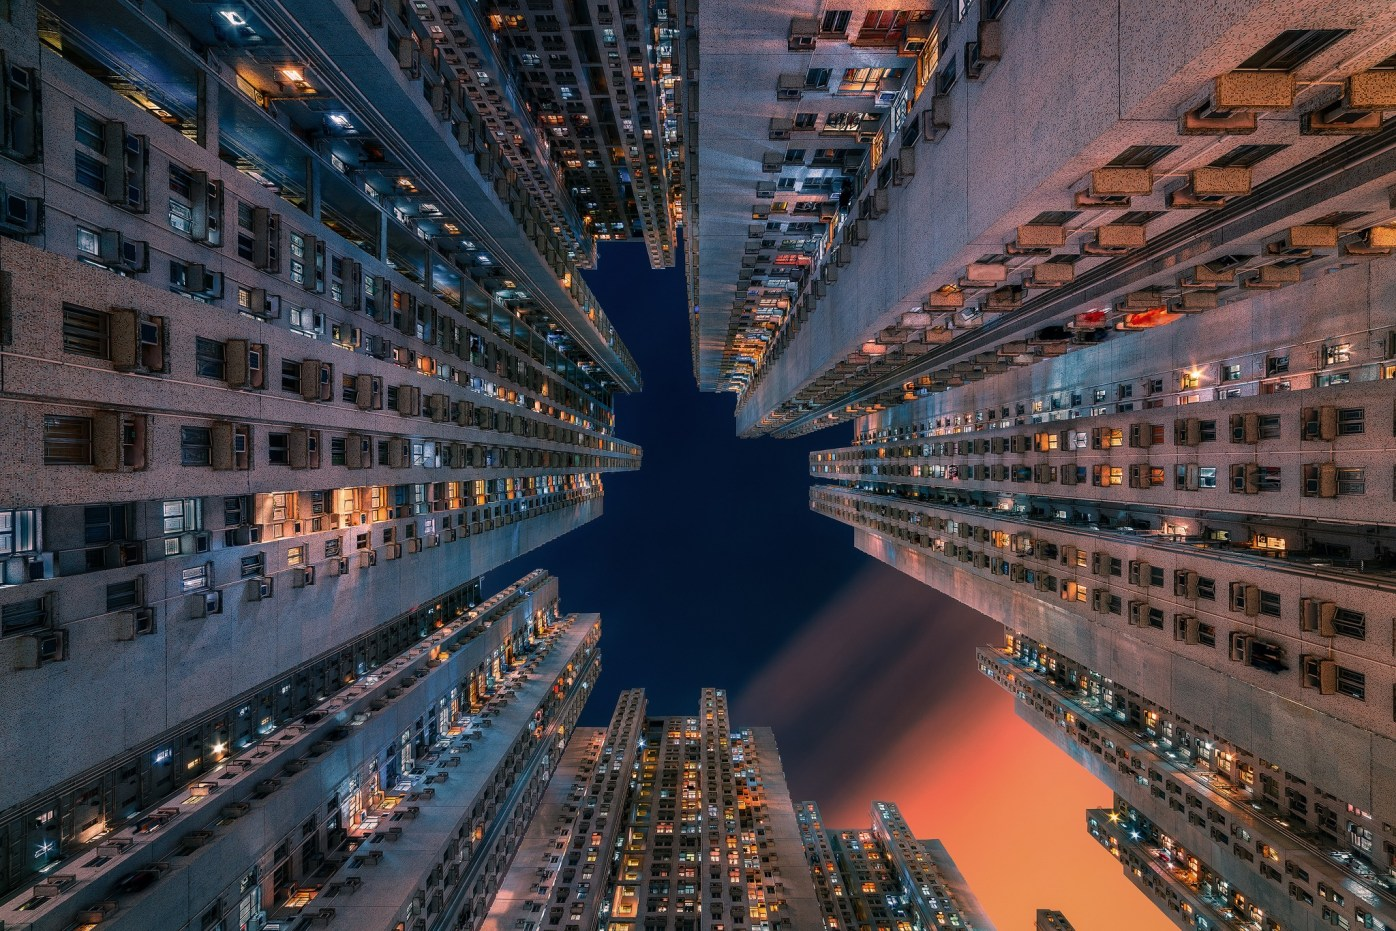 Utopia - Apartment blocks in Tseung Kwan O, Hong Kong